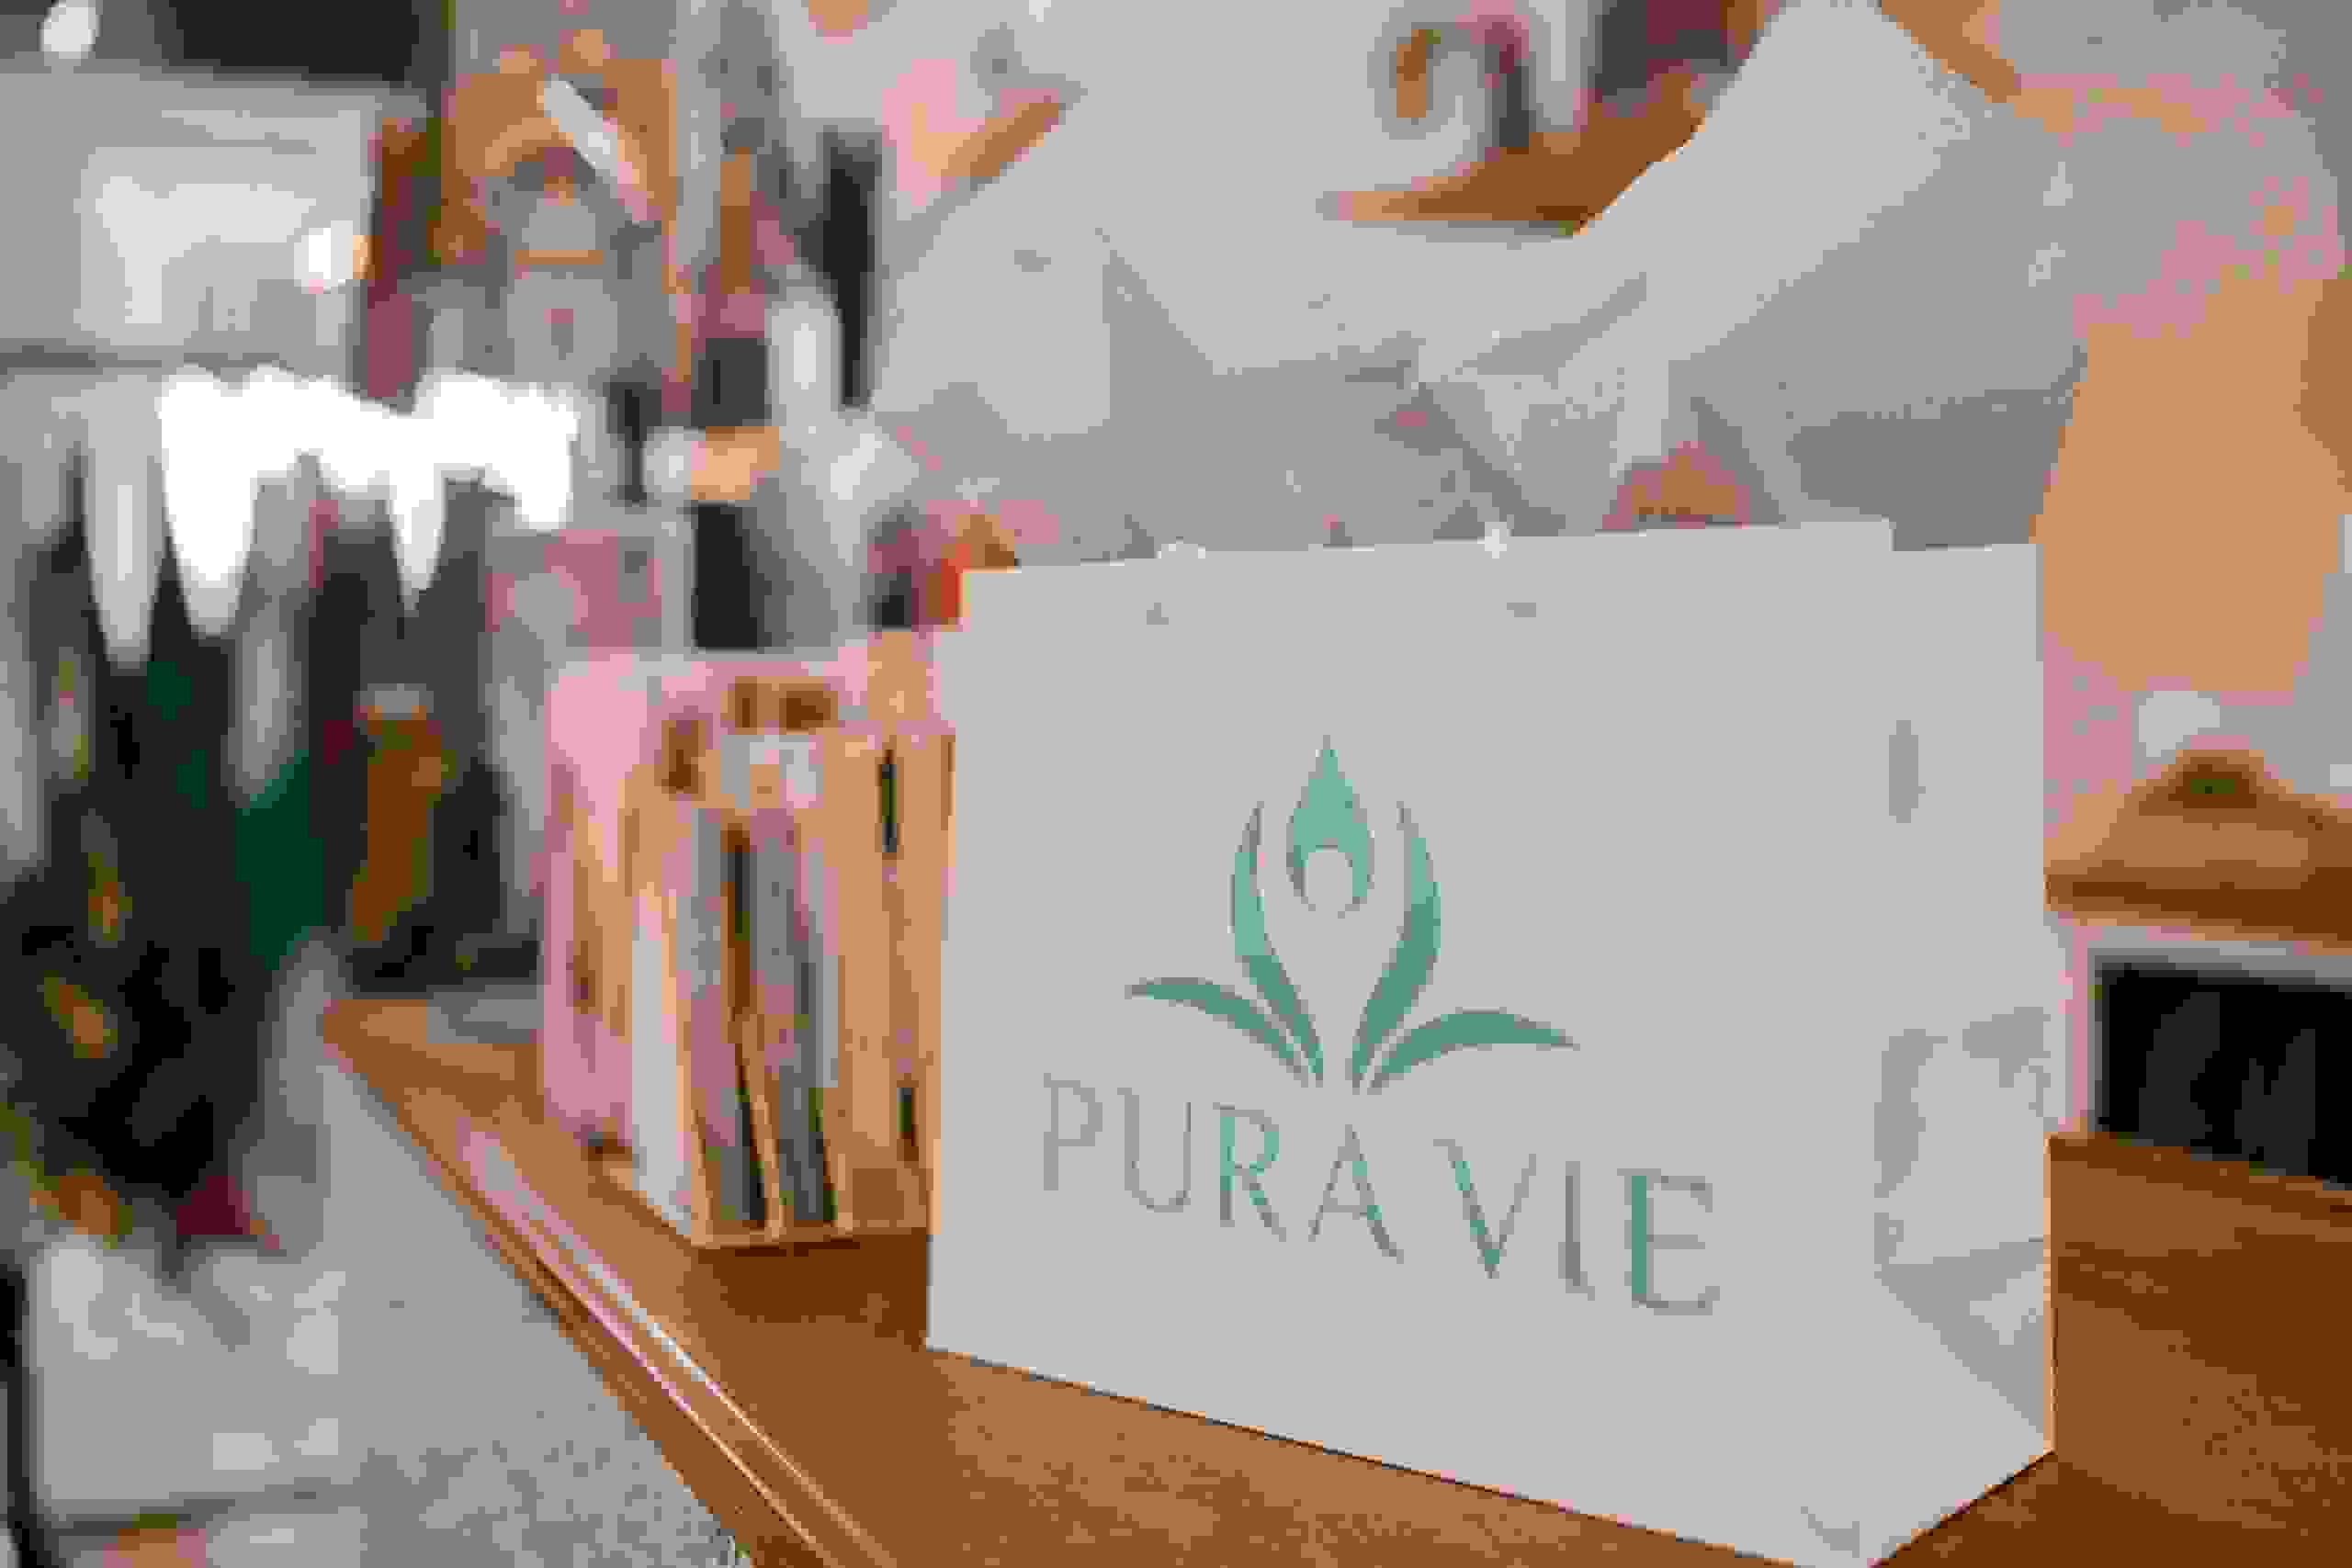 Pura Vie gift bag with tissue paper sitting on top of retail desk with shopping gifts